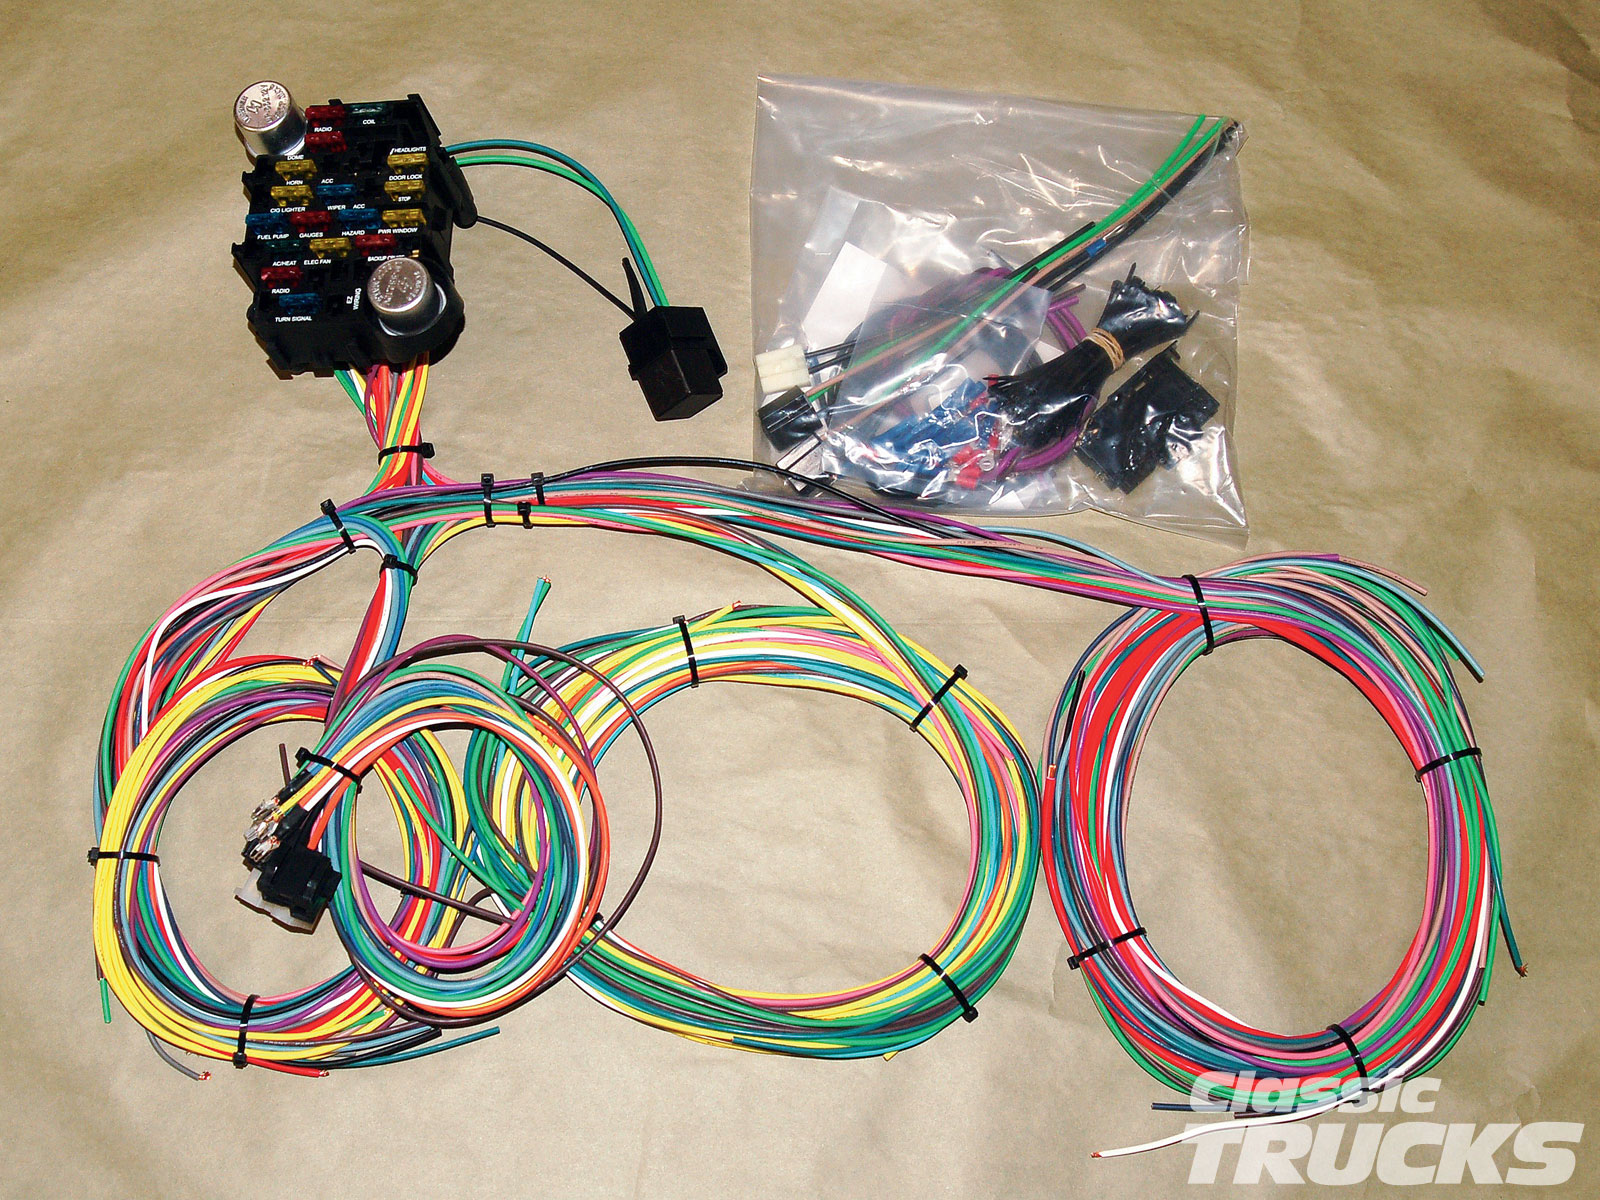 1010clt 02 o aftermarket wiring harness install kit?resize\\\=665%2C499 painless wiring harness australia tamahuproject org universal wiring harness australia at virtualis.co